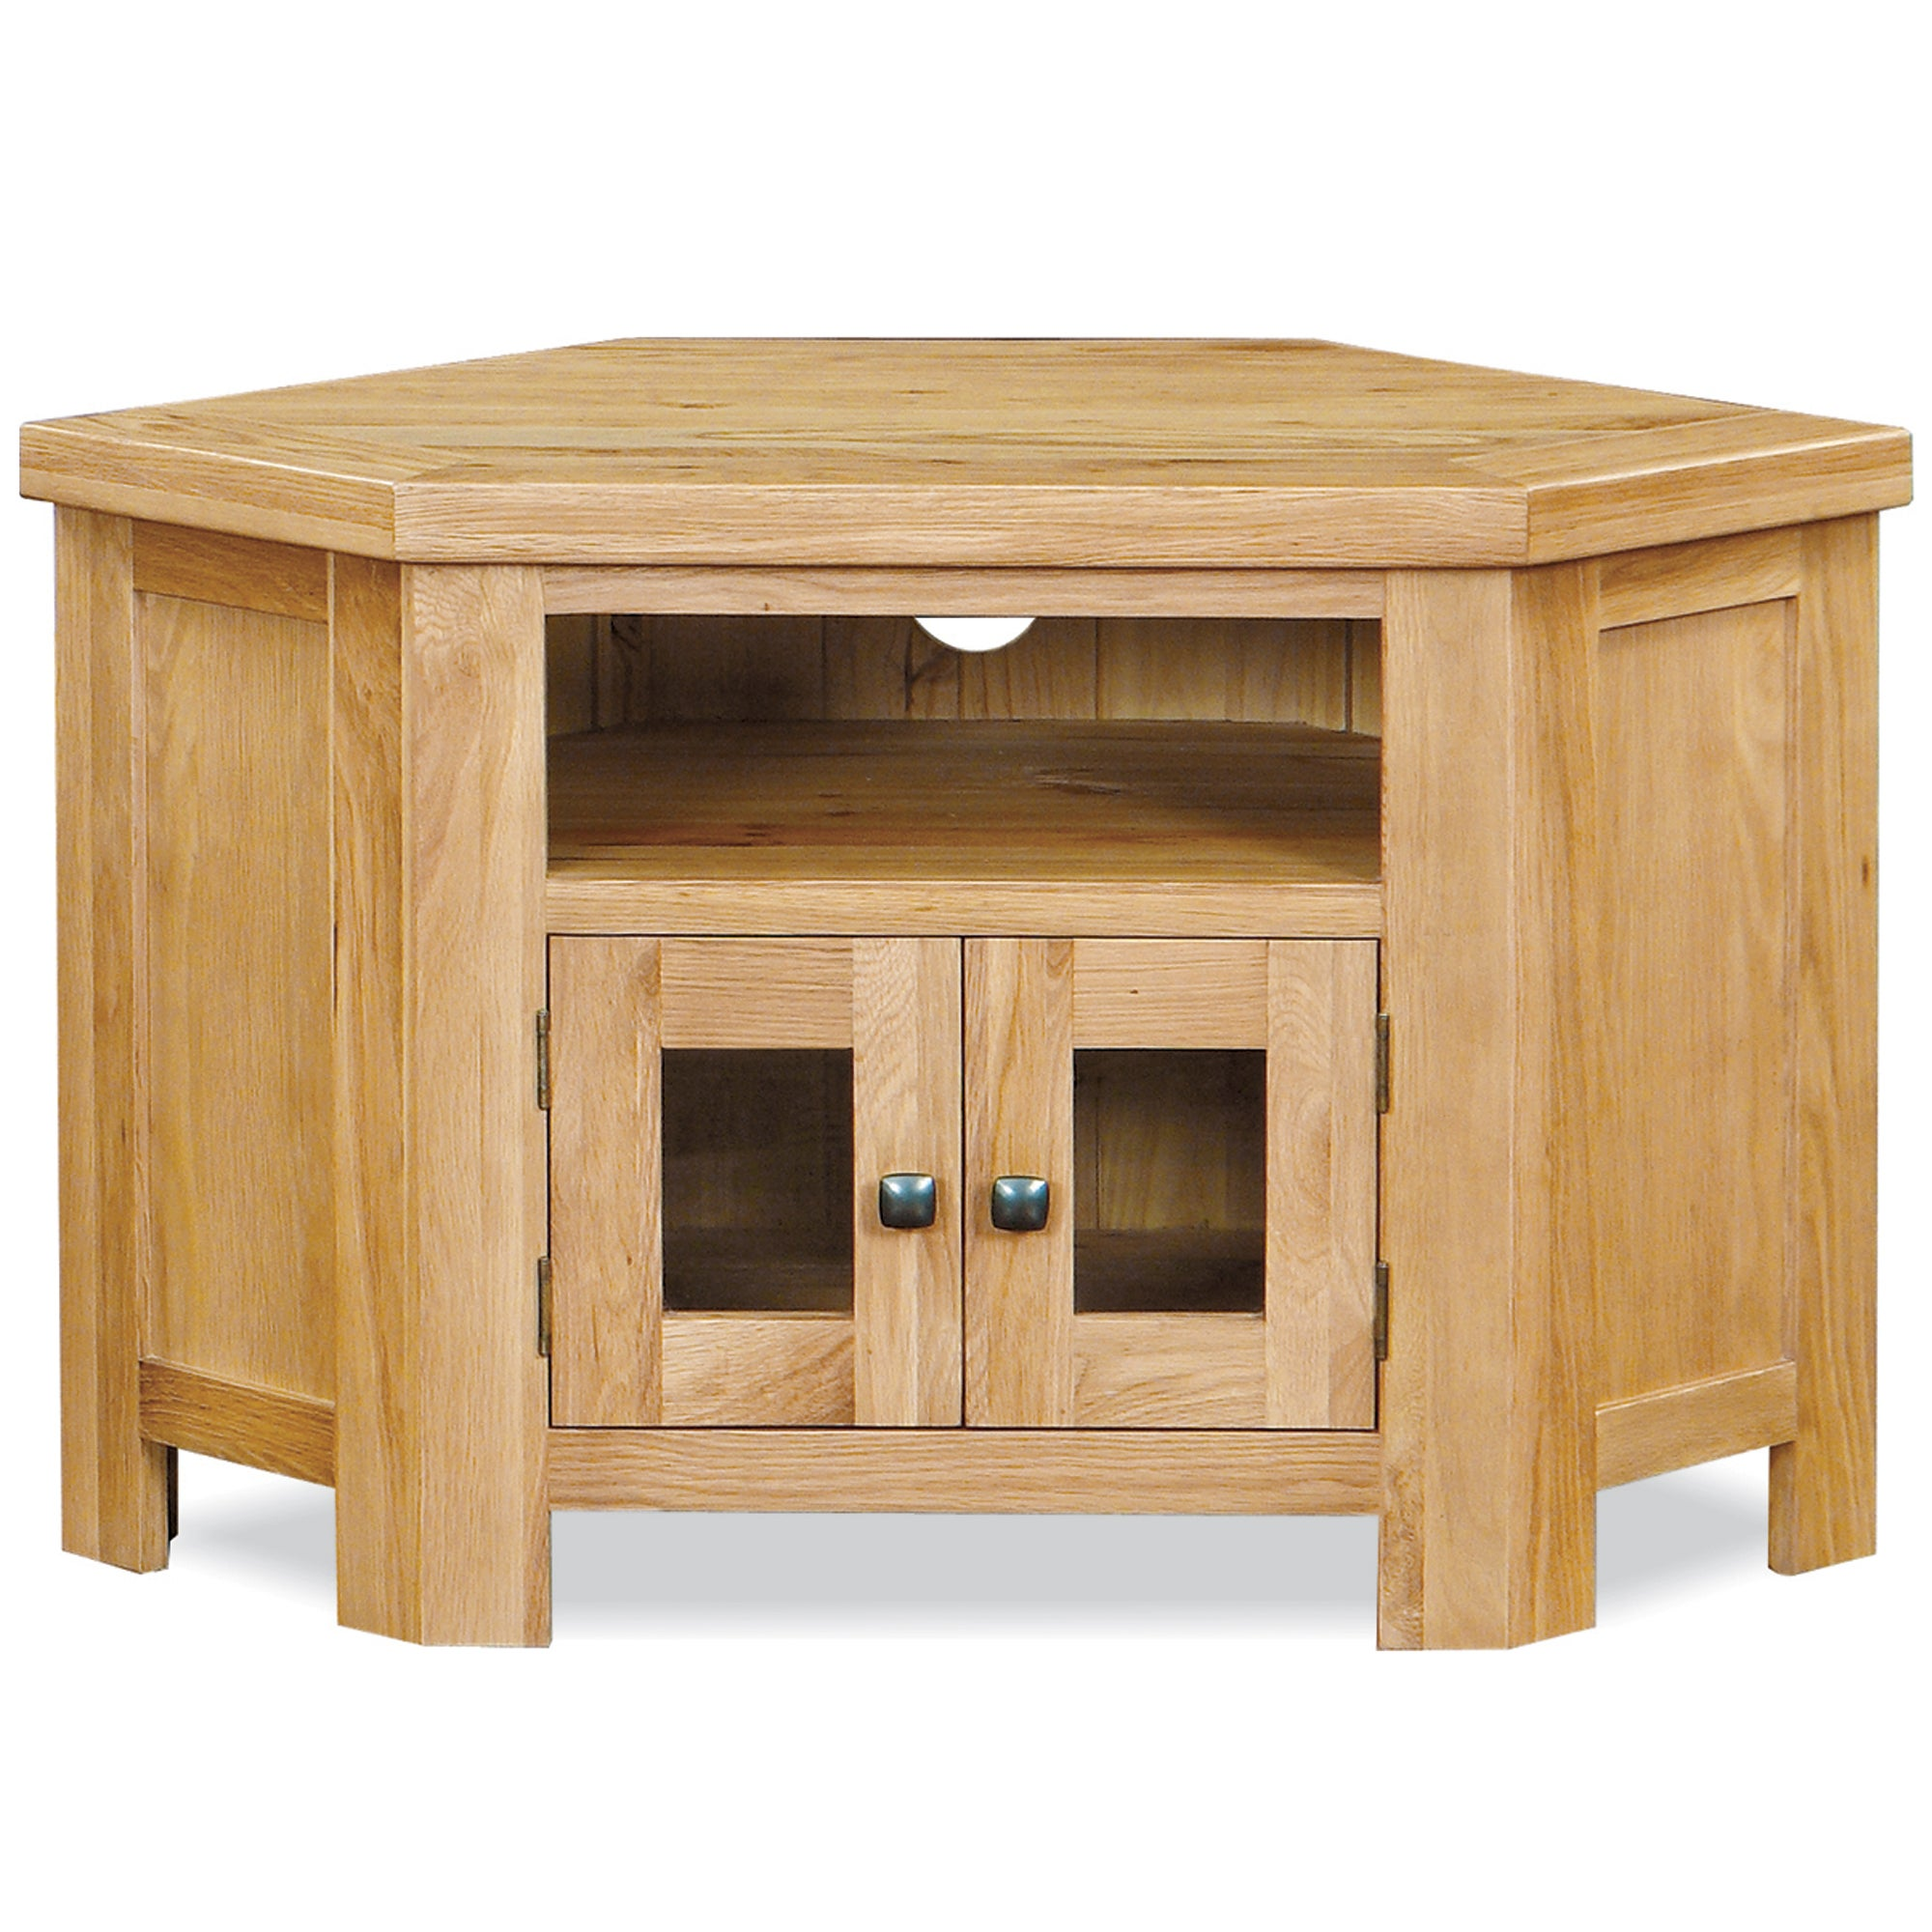 Buy Cheap Oak Tv Unit Compare Furniture Prices For Best